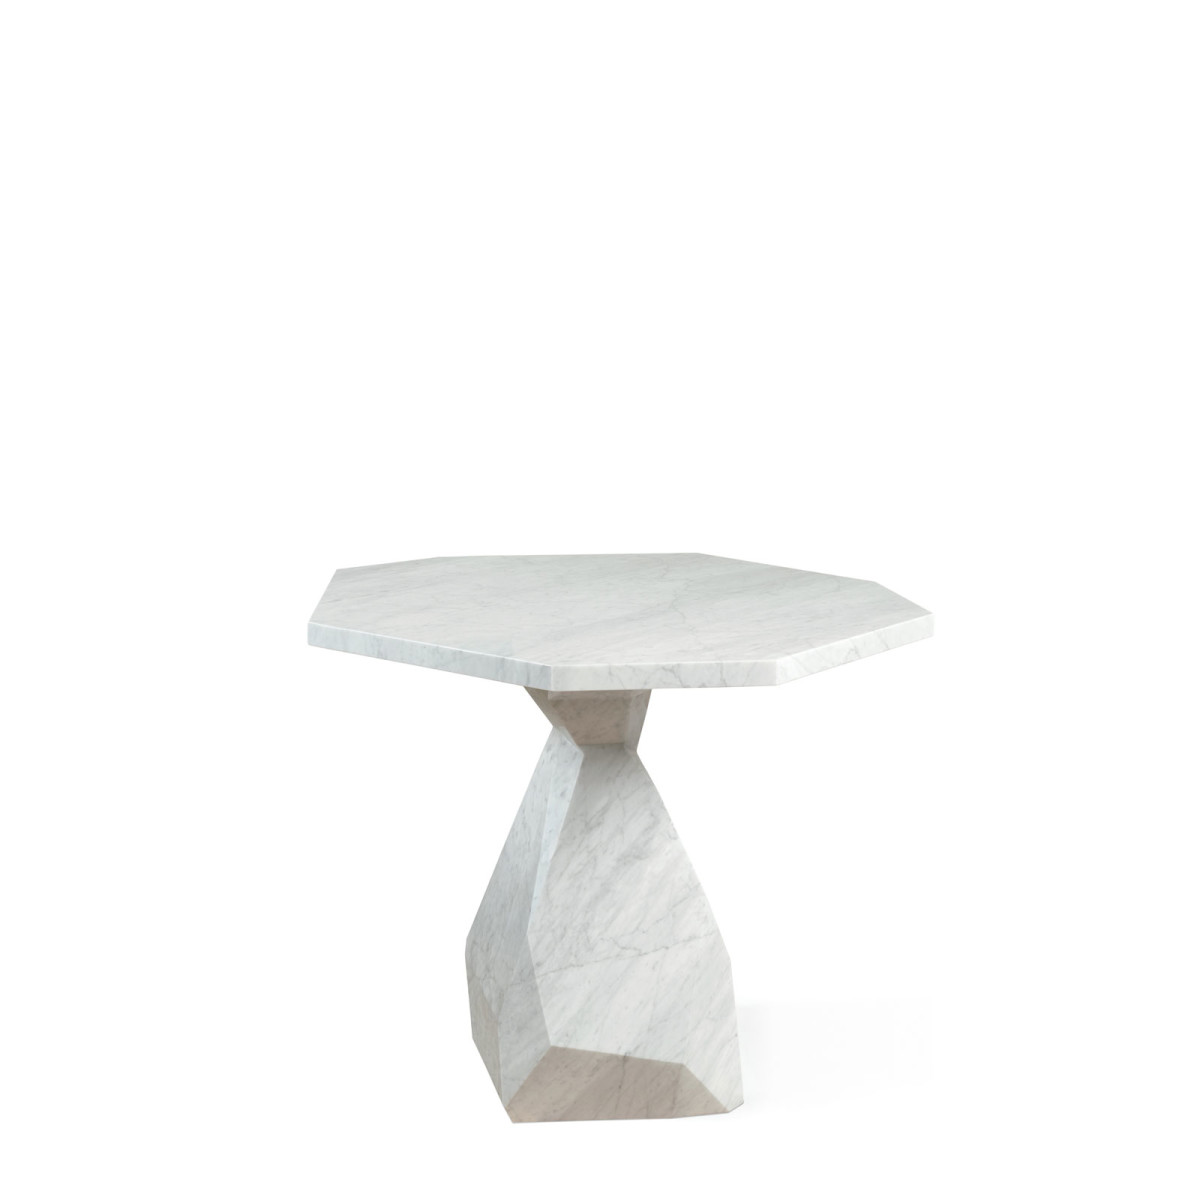 Rock | 90 Dining Table